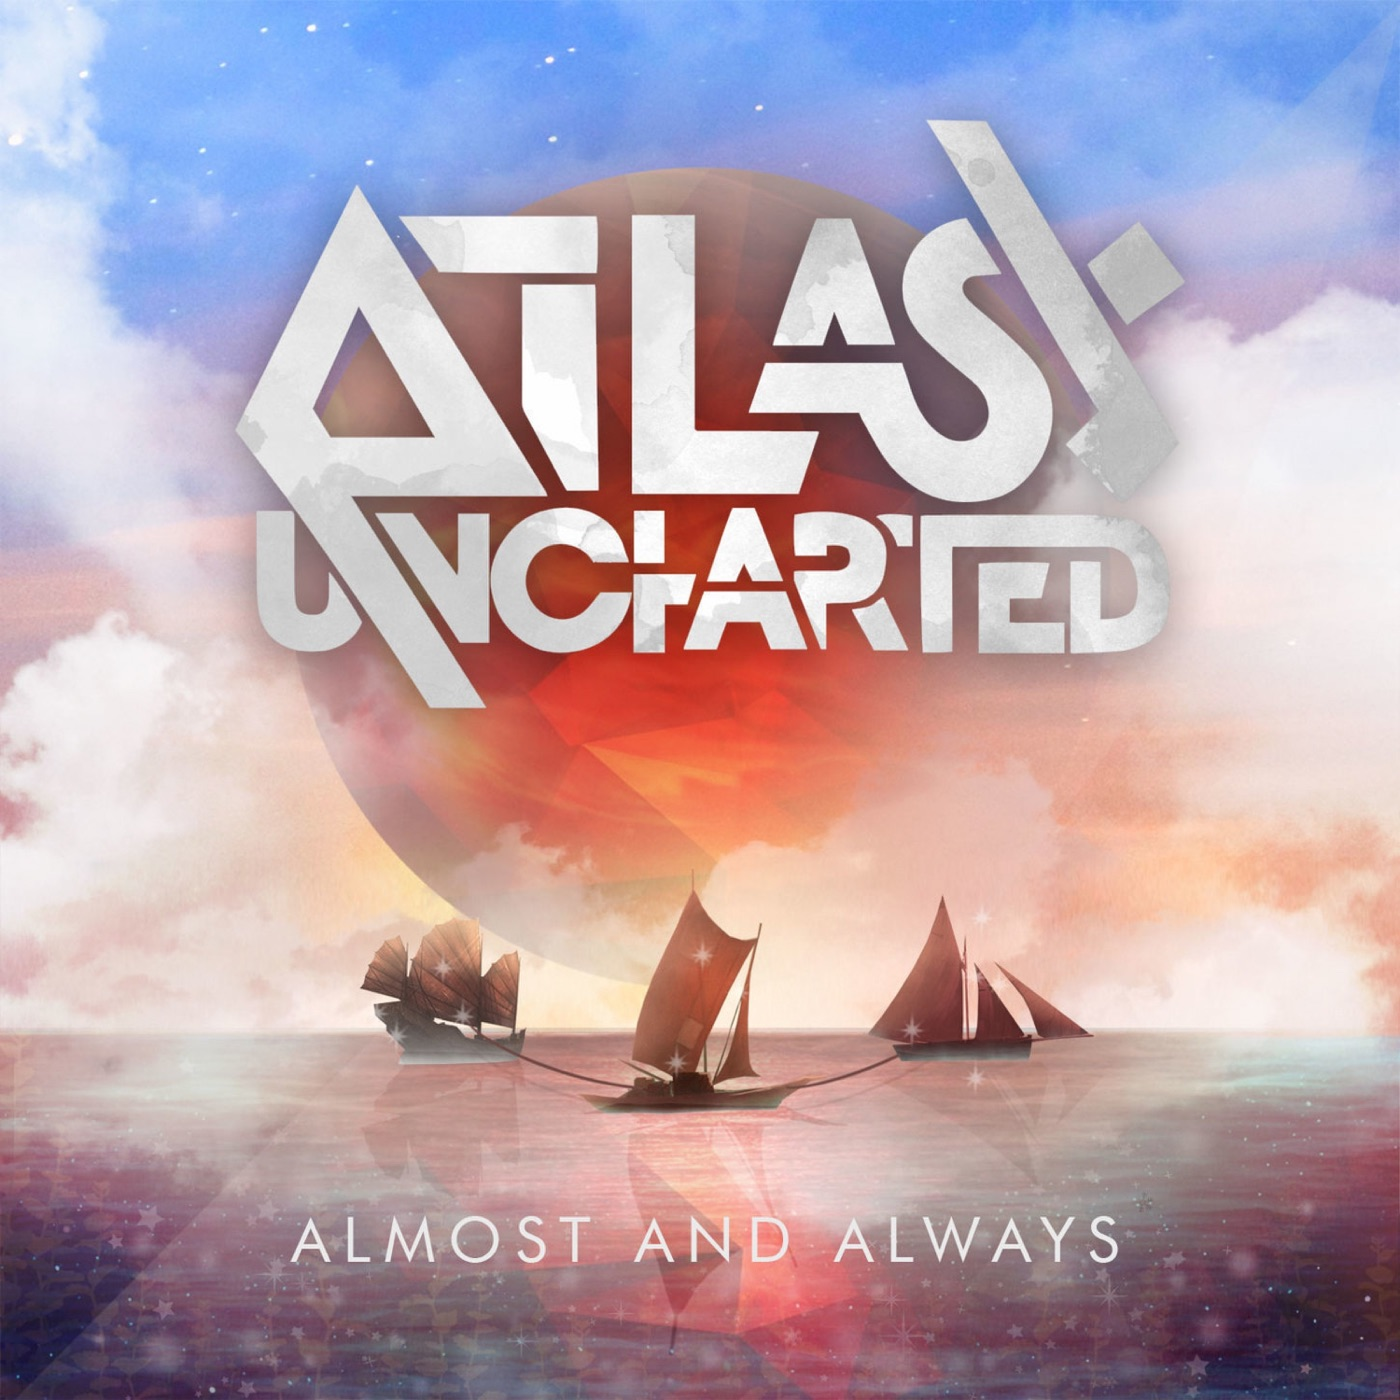 Atlas Uncharted - Kin/Pursuit of Happiness [Unreleased Tracks] (2018)